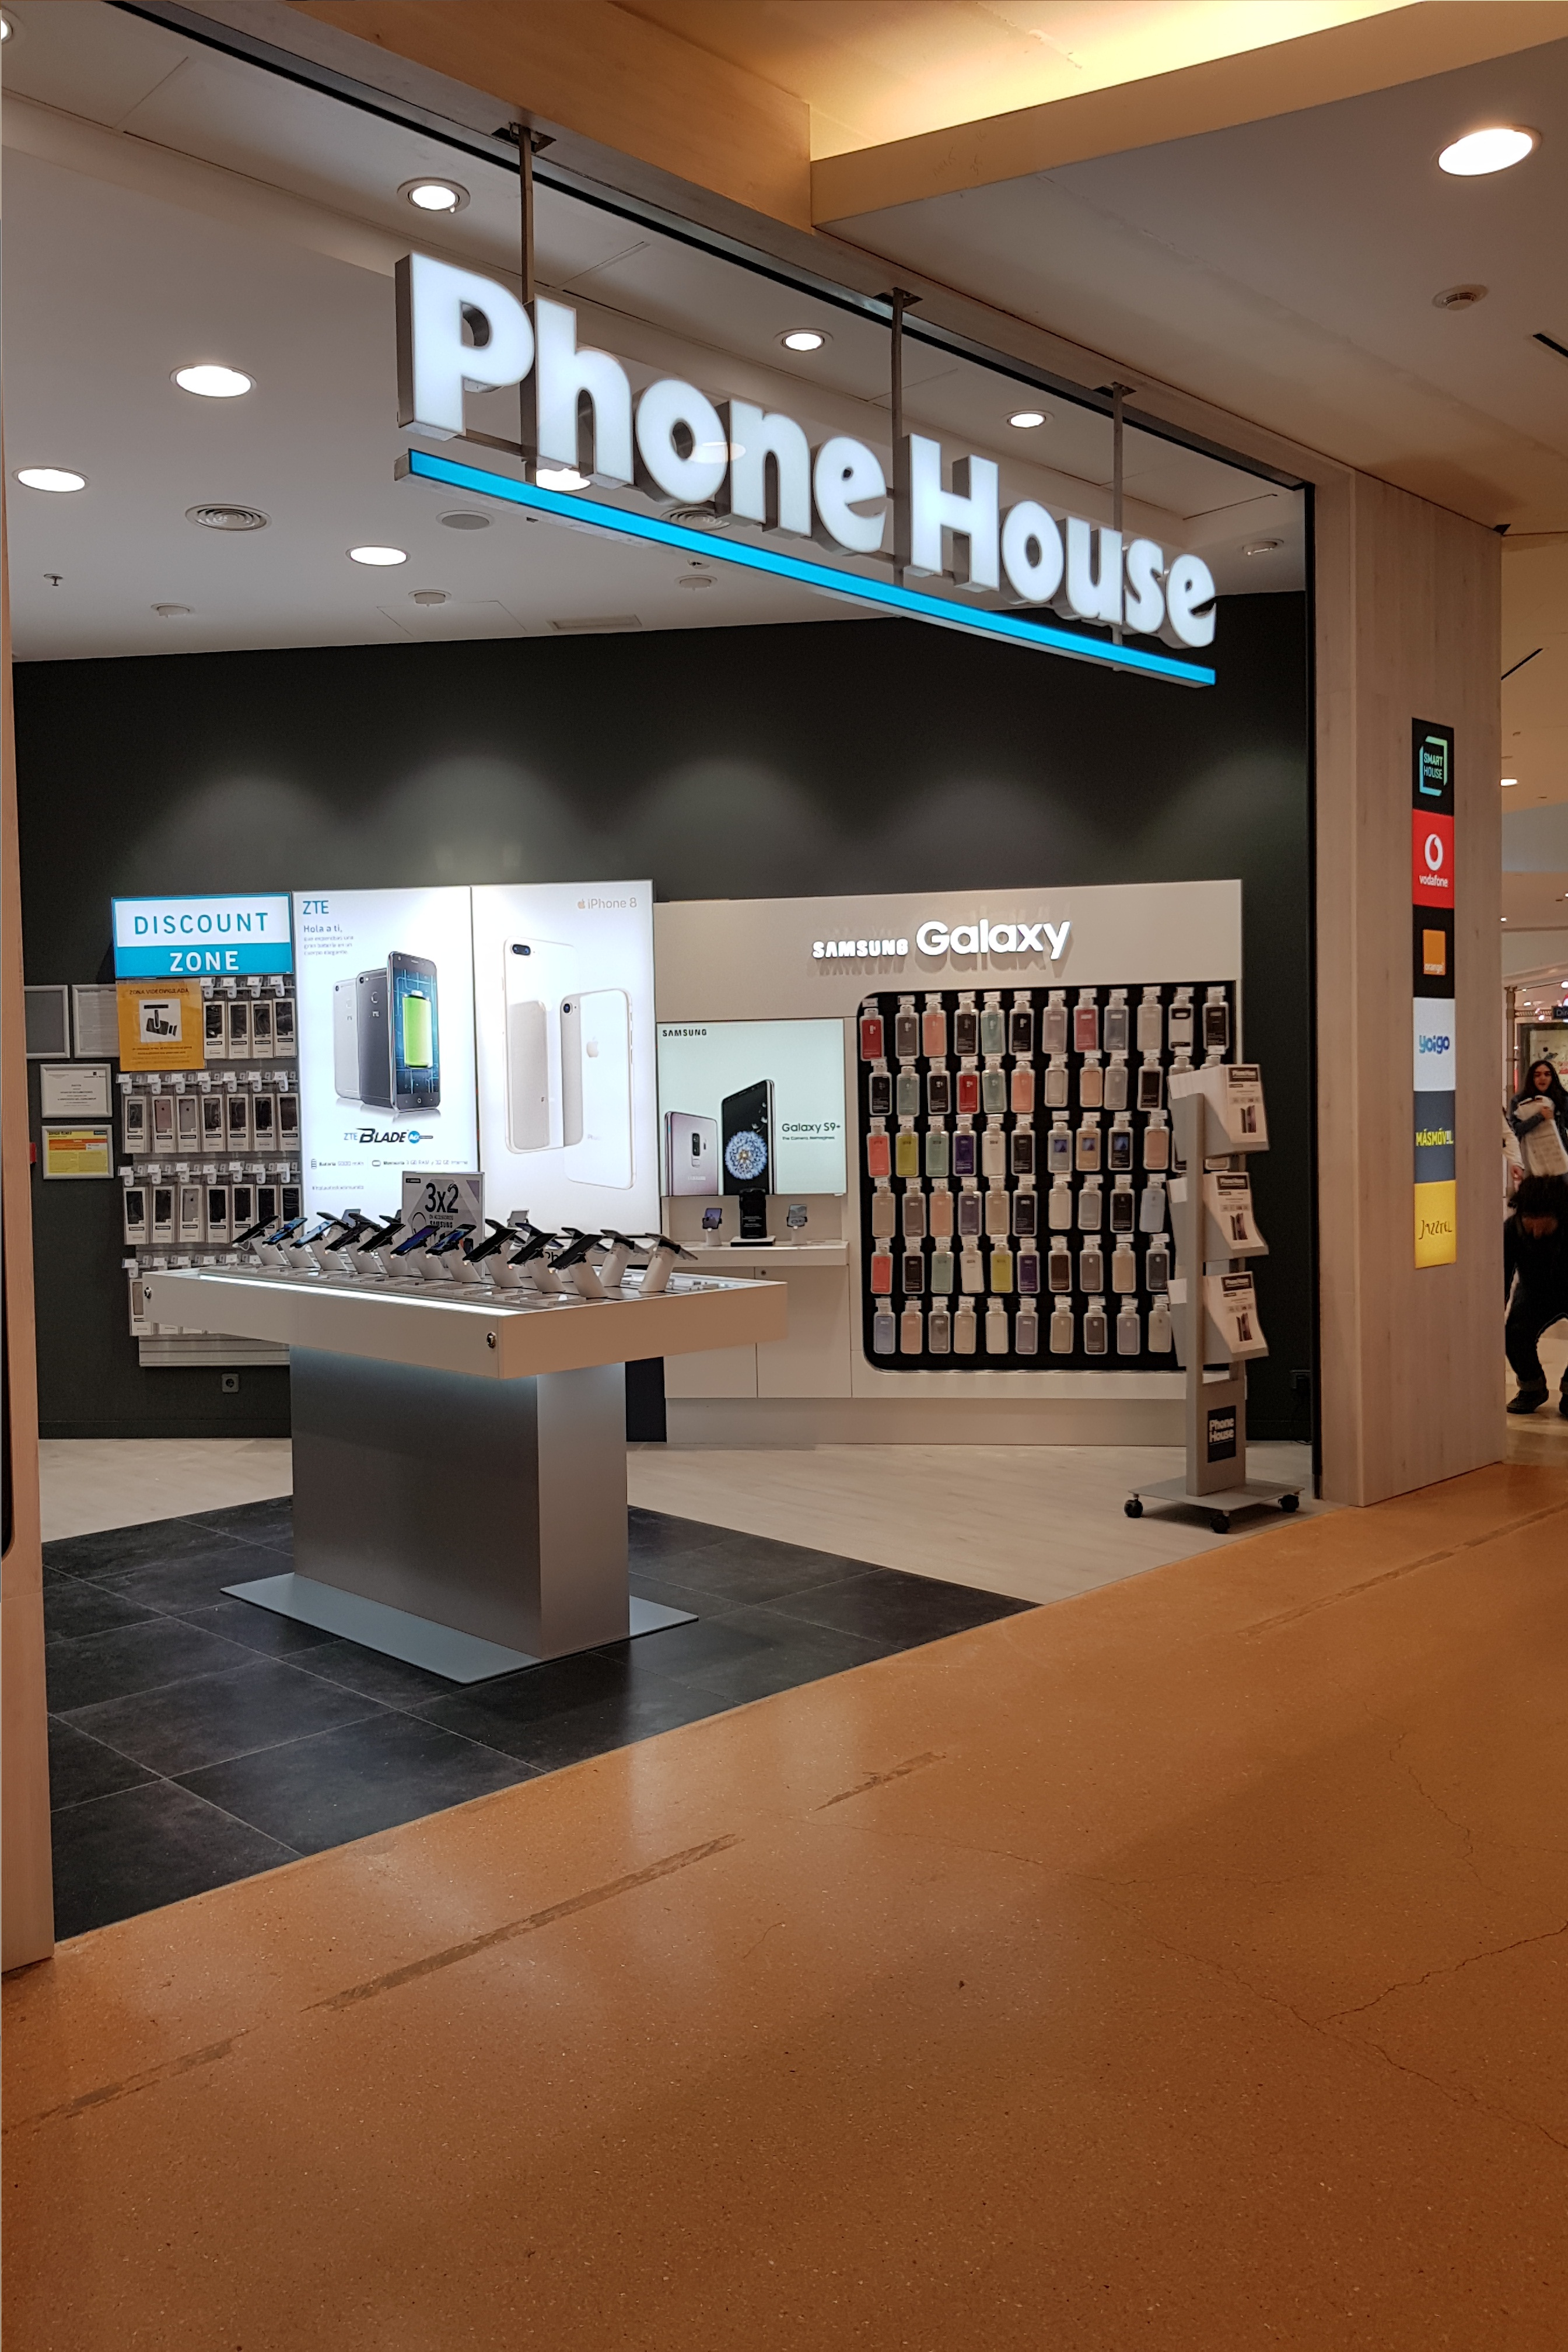 PHONE HOUSE - Discount Zone